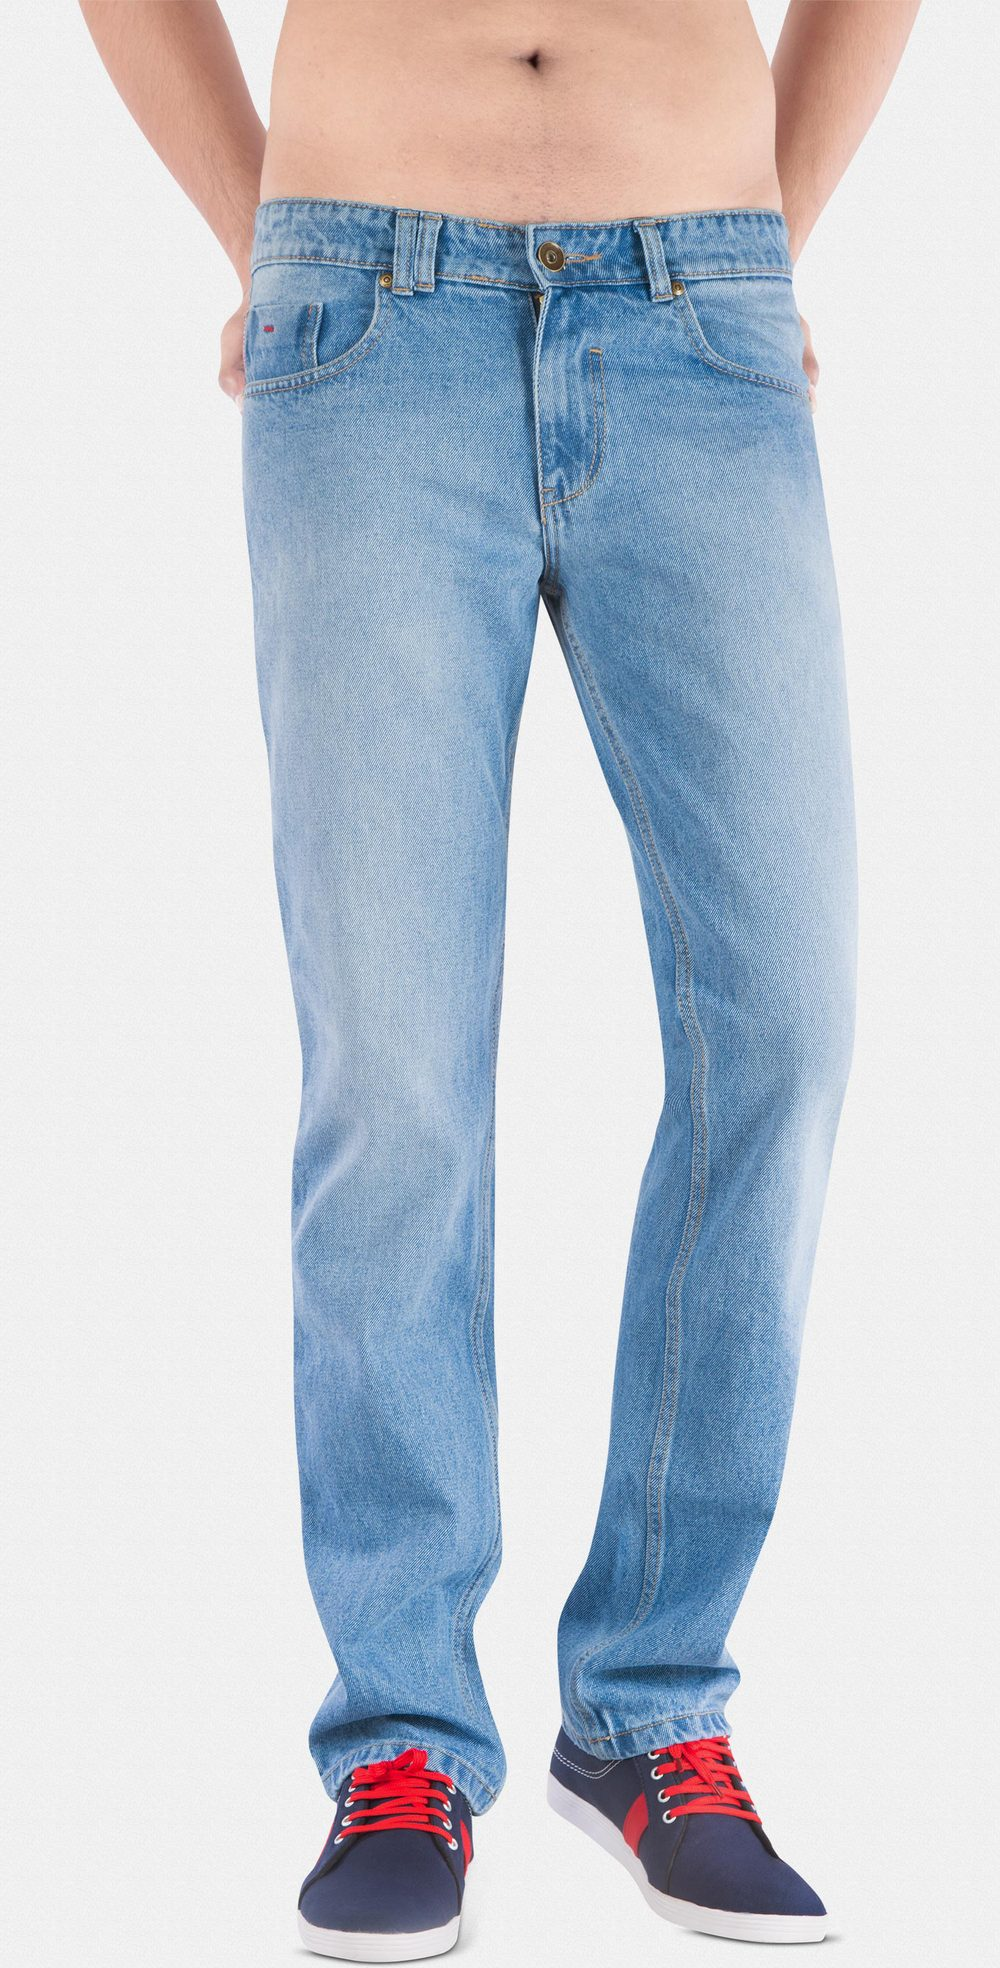 Street Guys' Blue High Waist Jeans